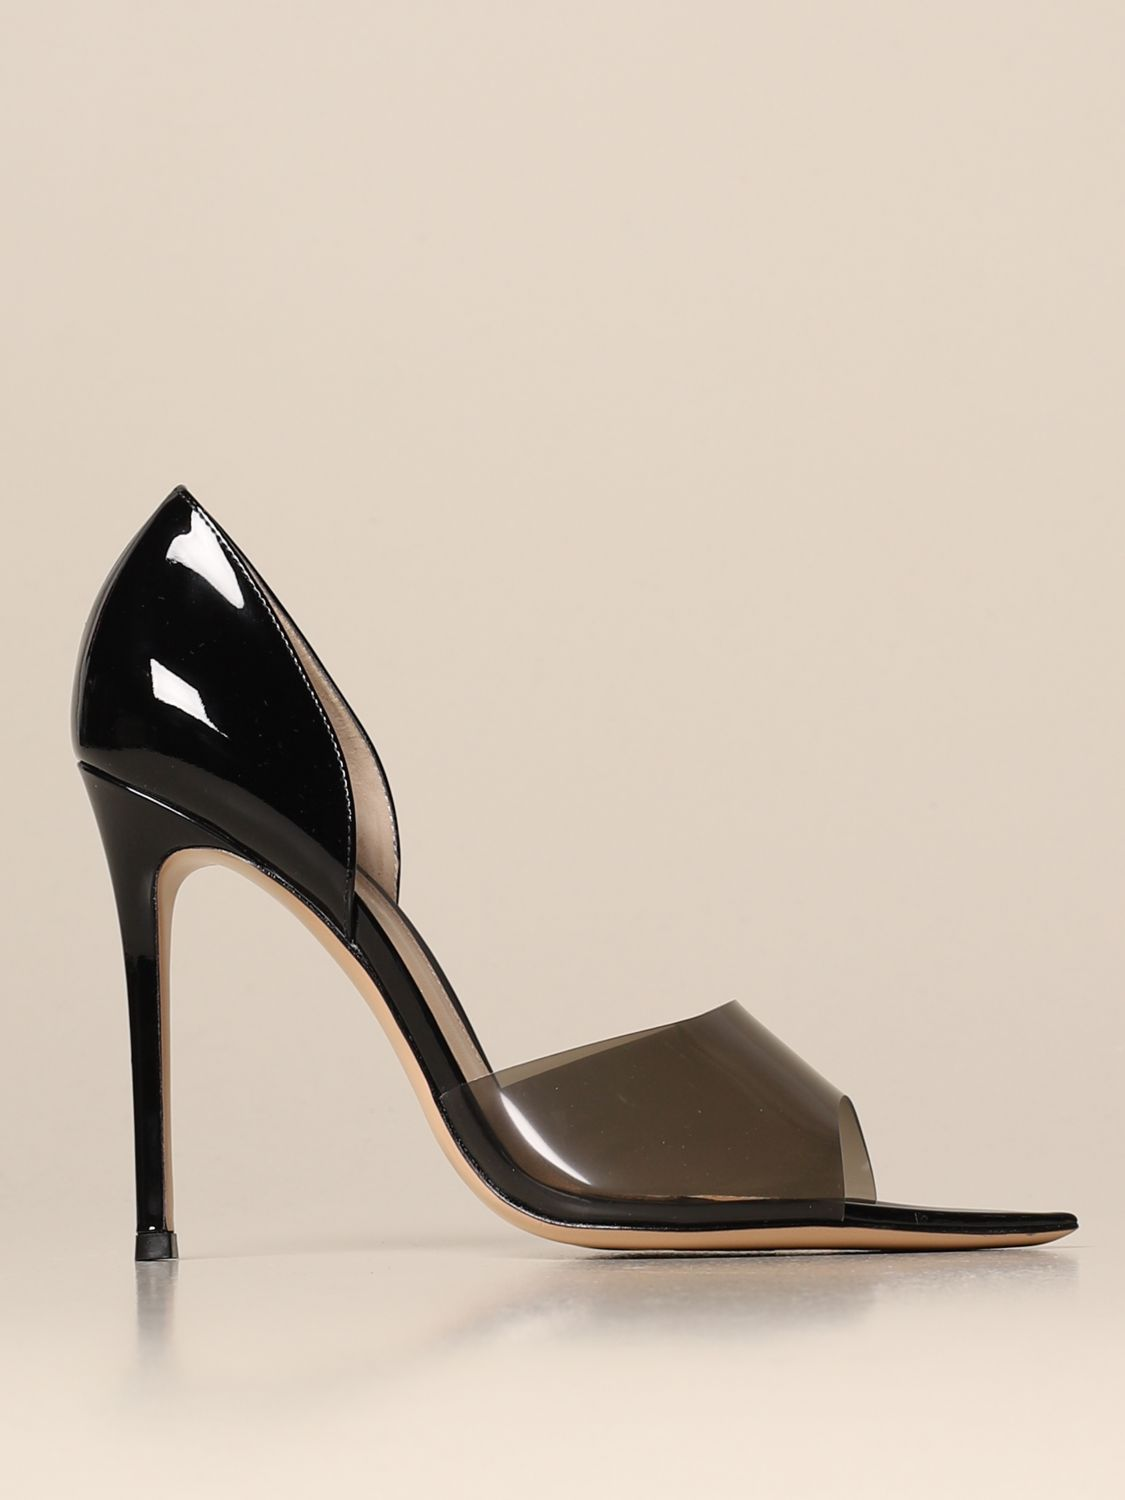 Chaussures à talons Gianvito Rossi: Chaussures à talons femme Gianvito Rossi noir 1